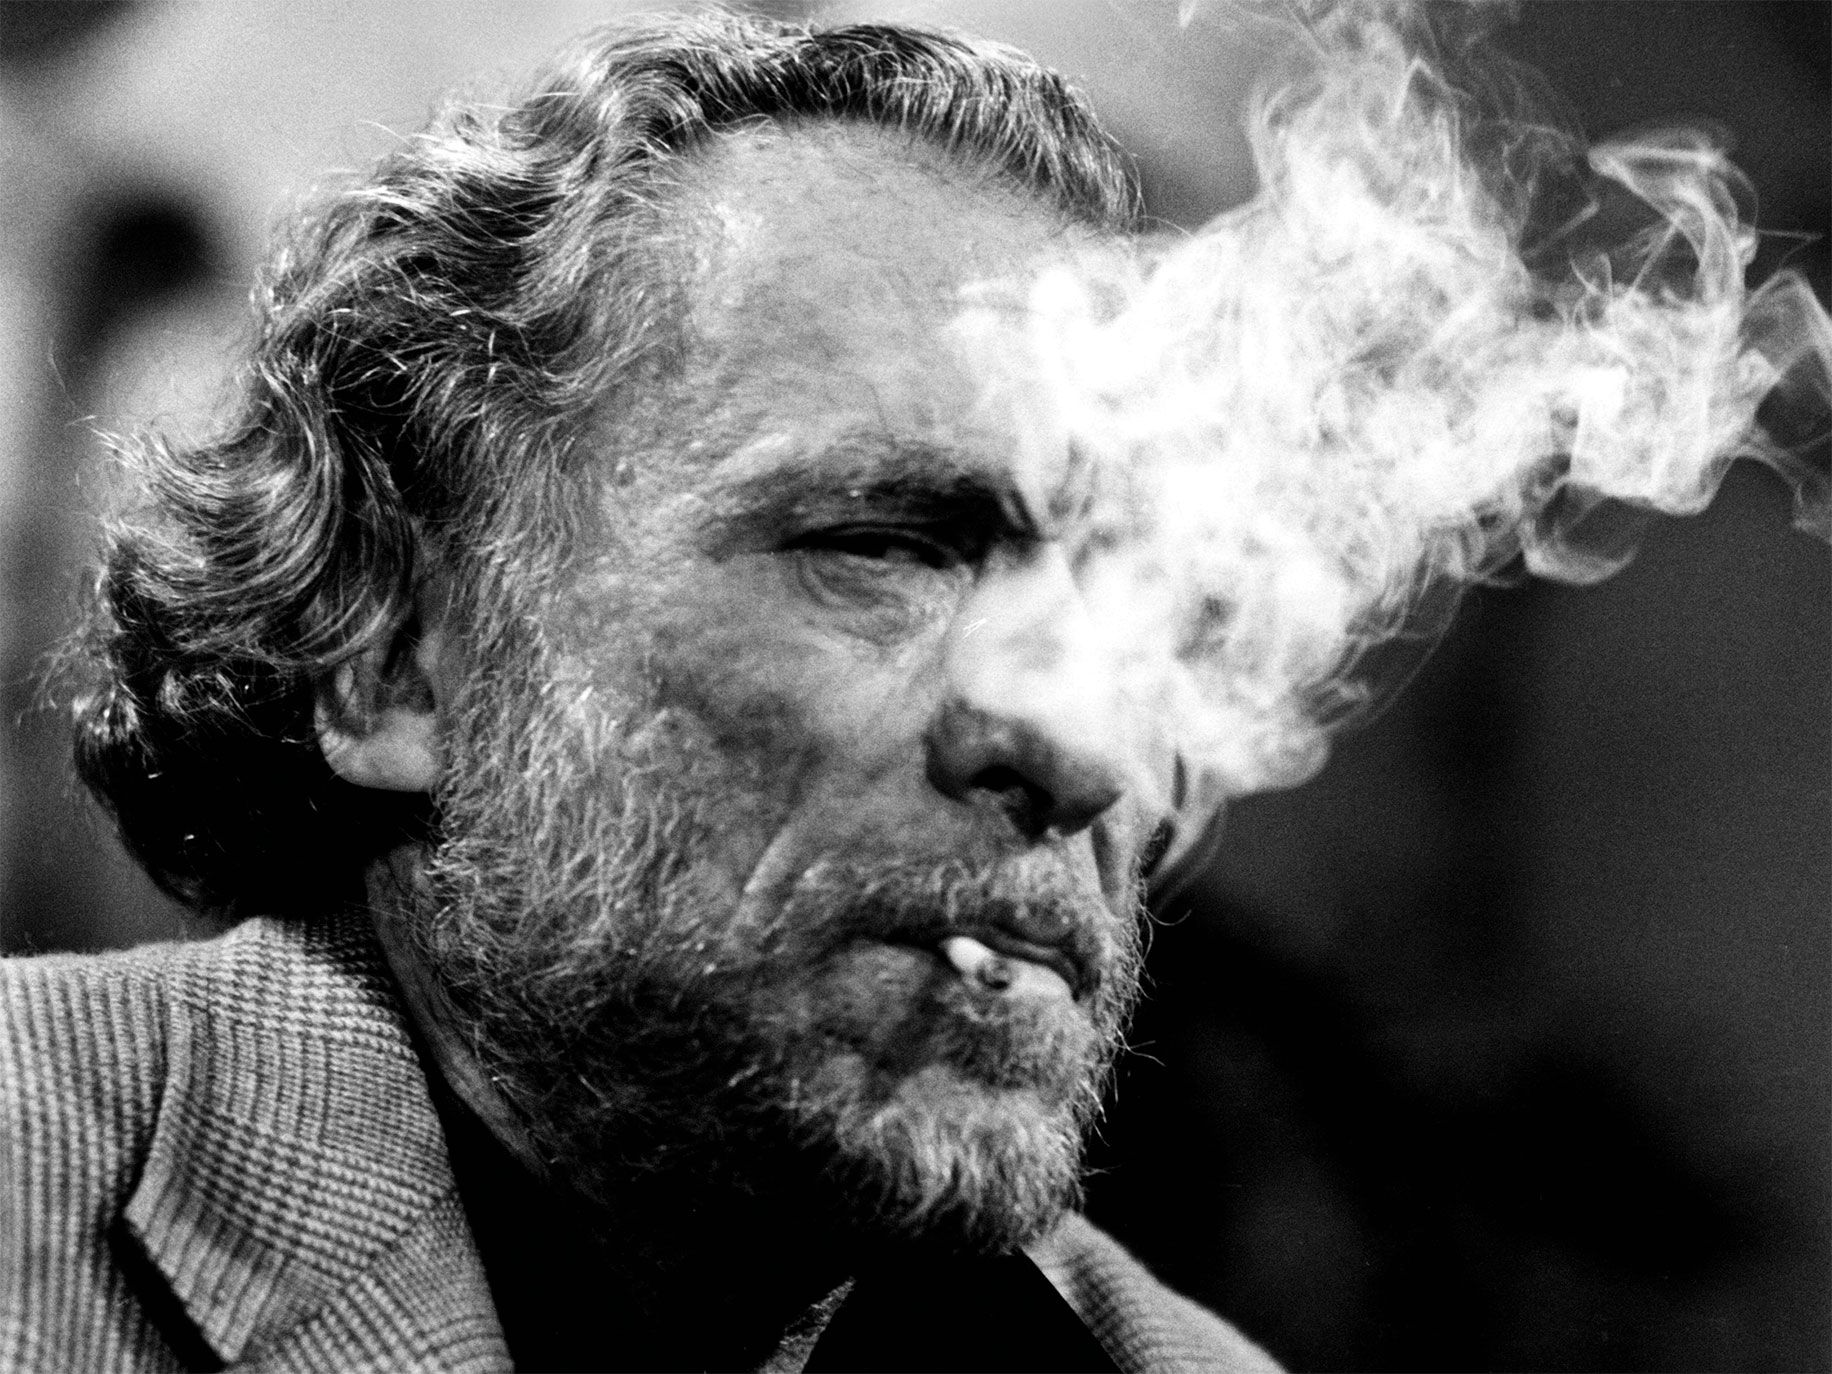 Charles Bukowski's fiction and poetry often explored the lives of those on L.A.'s Skid Row. He remains a popular, if controversial, writer 26 years after his death.